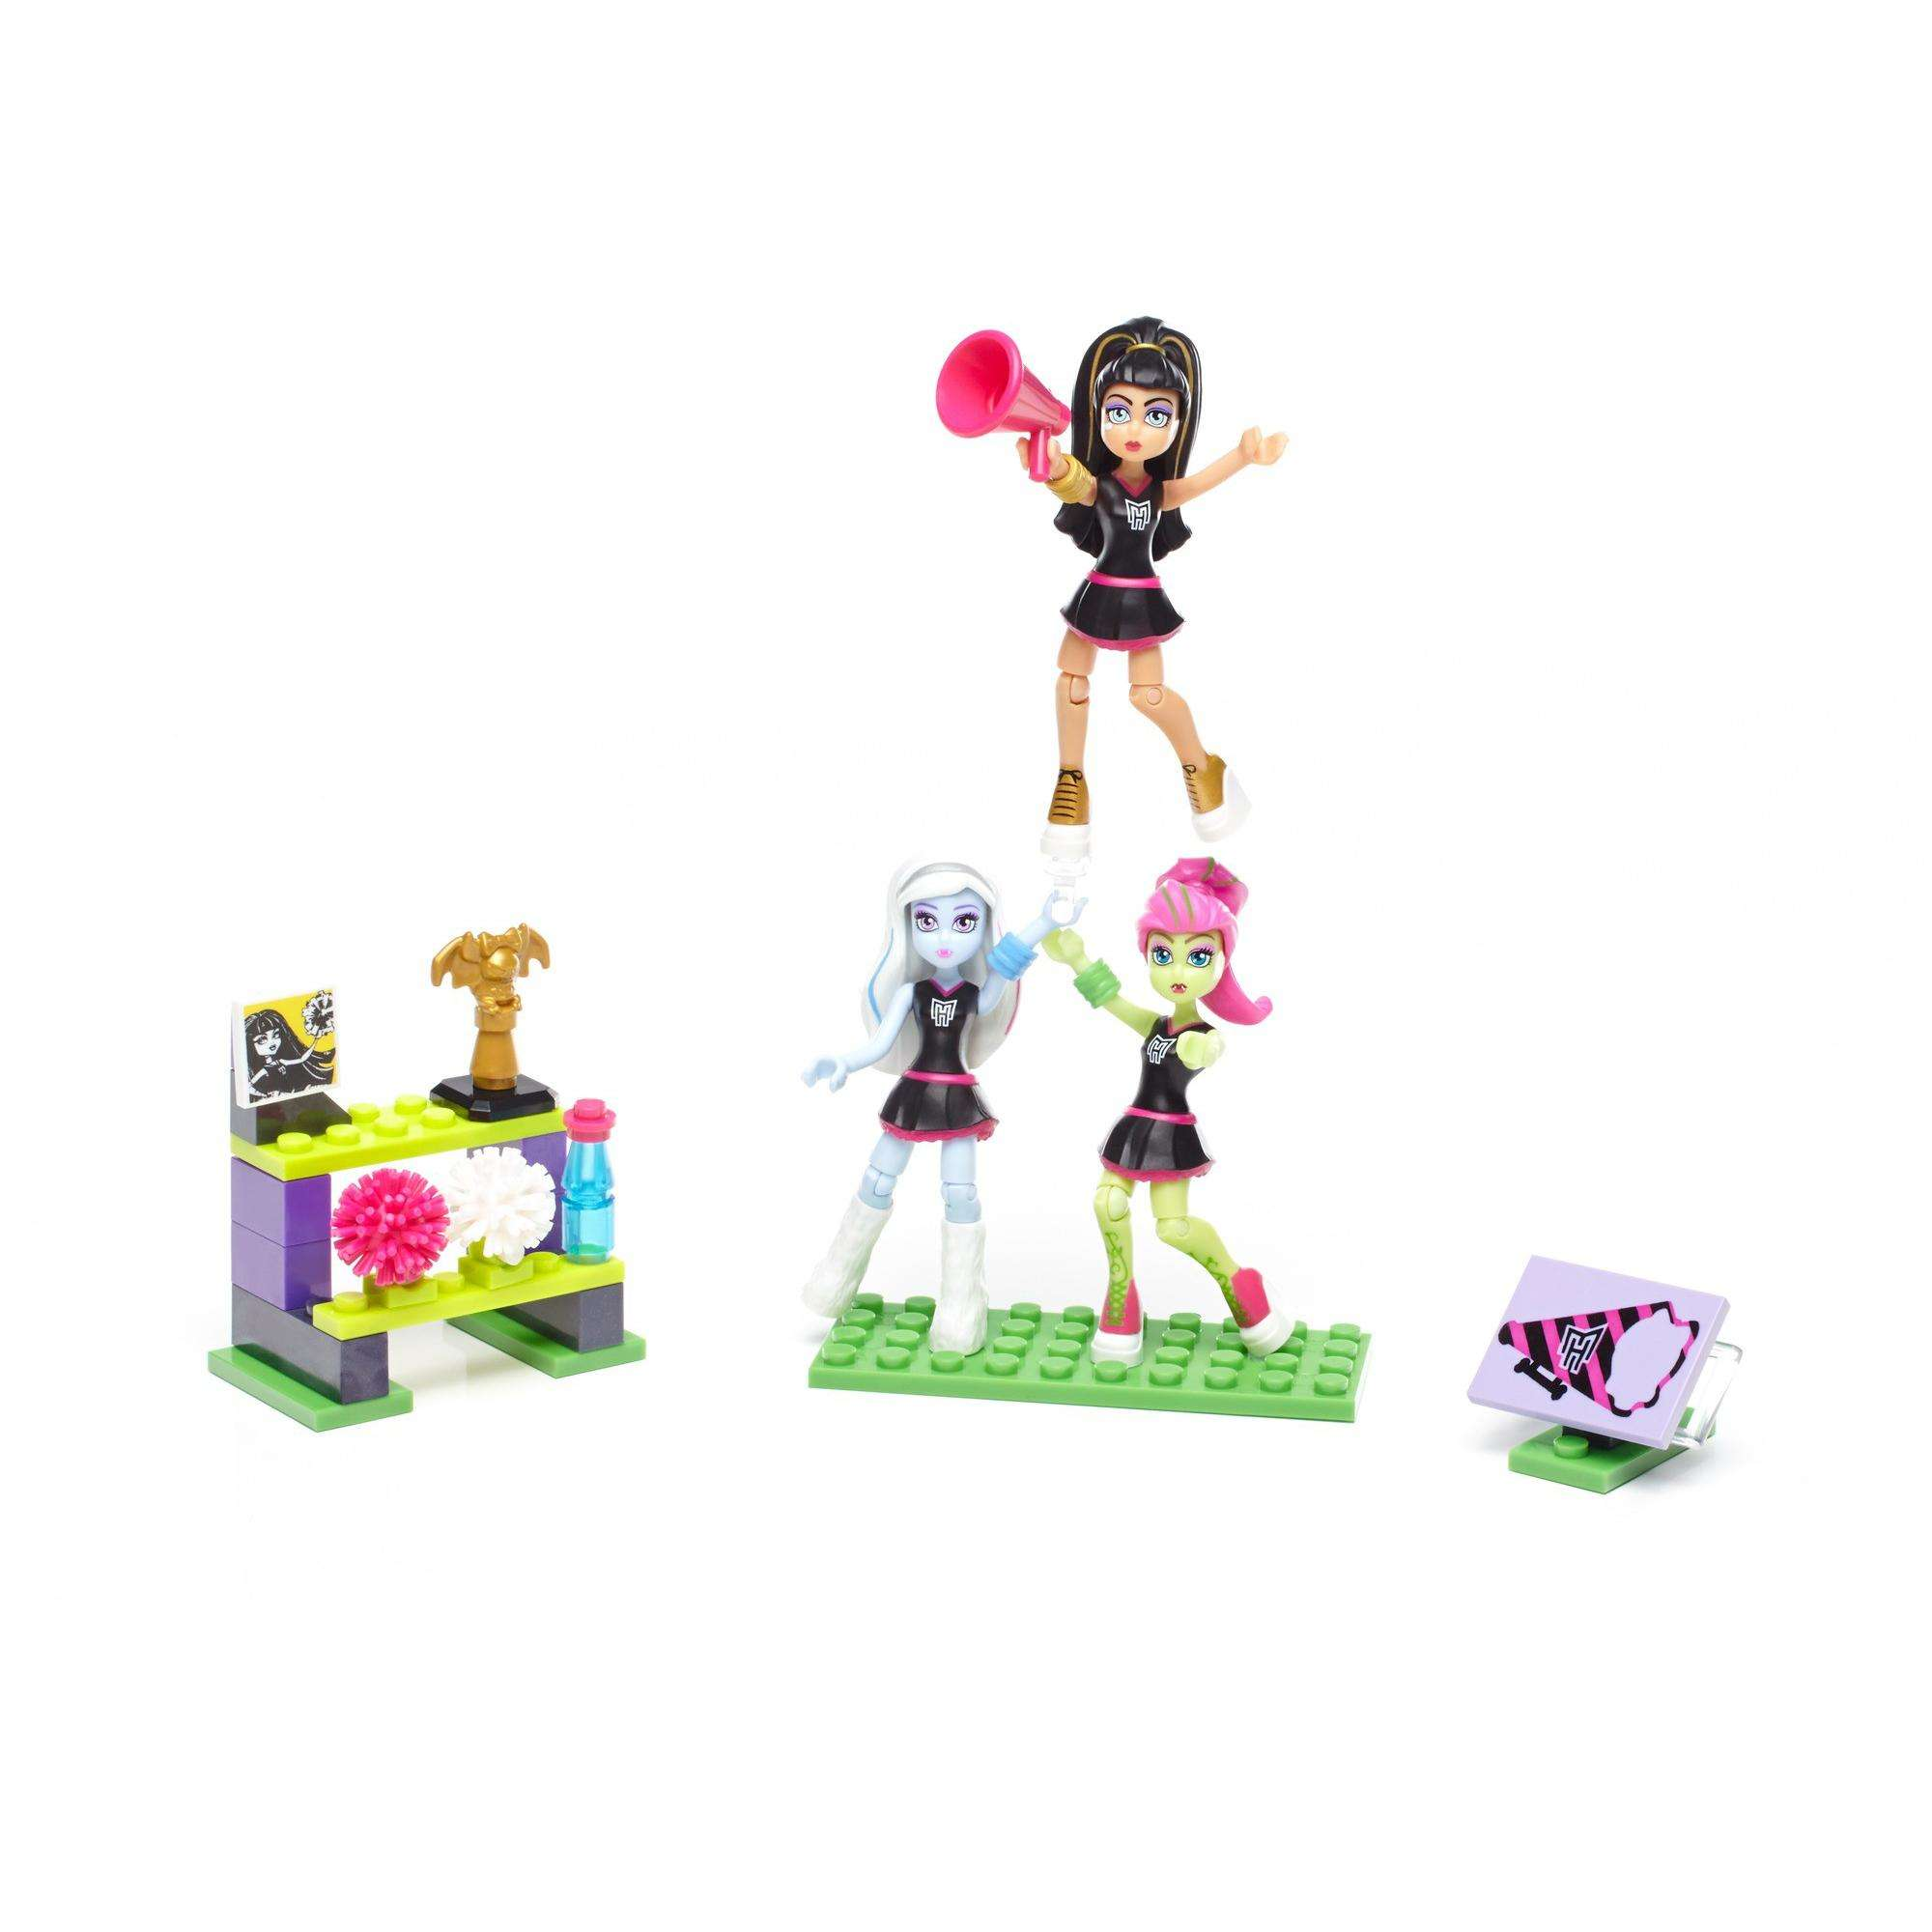 Mega Construx Monster High Figure Pack by Mega Brands, Inc.